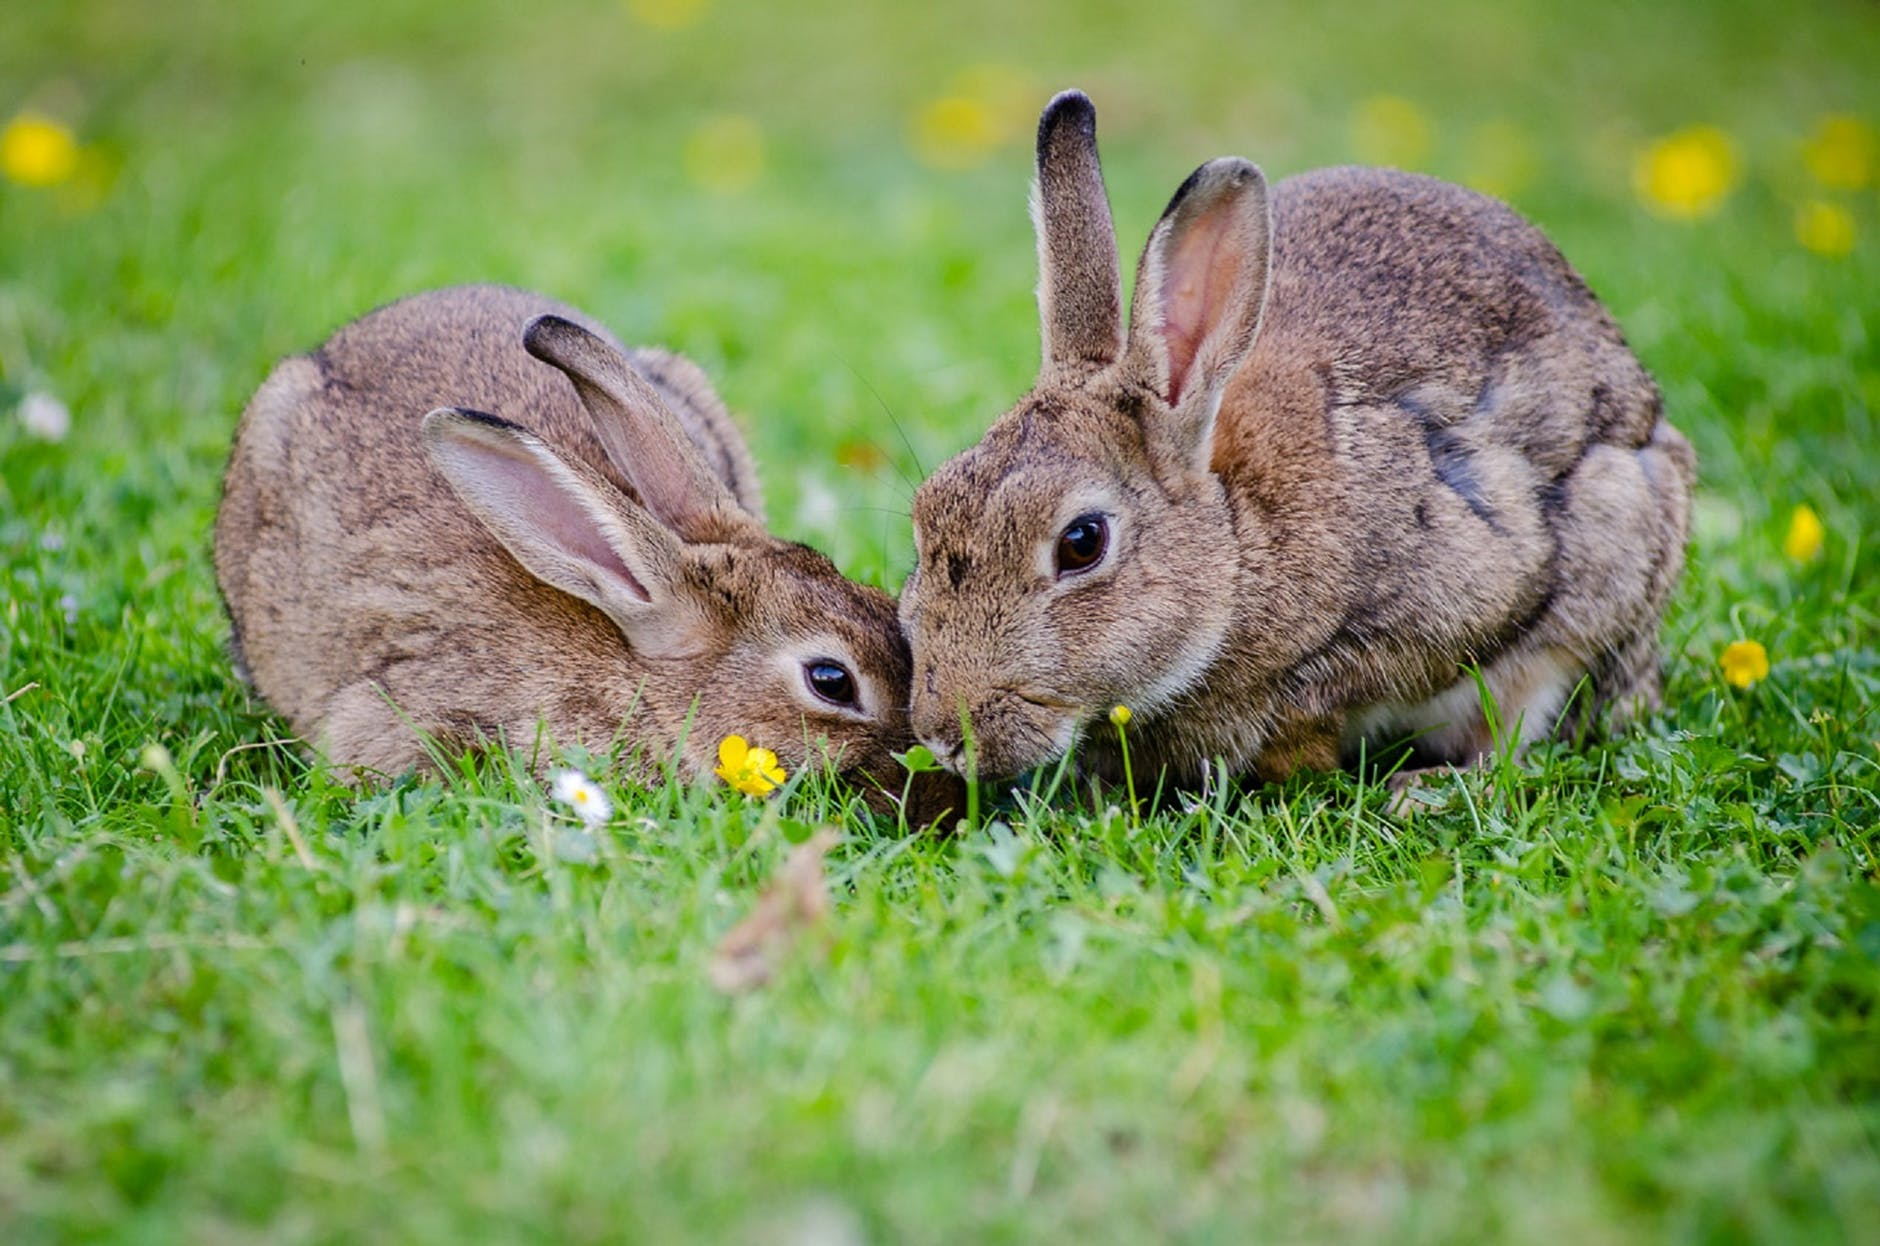 two brown rabbits in a field